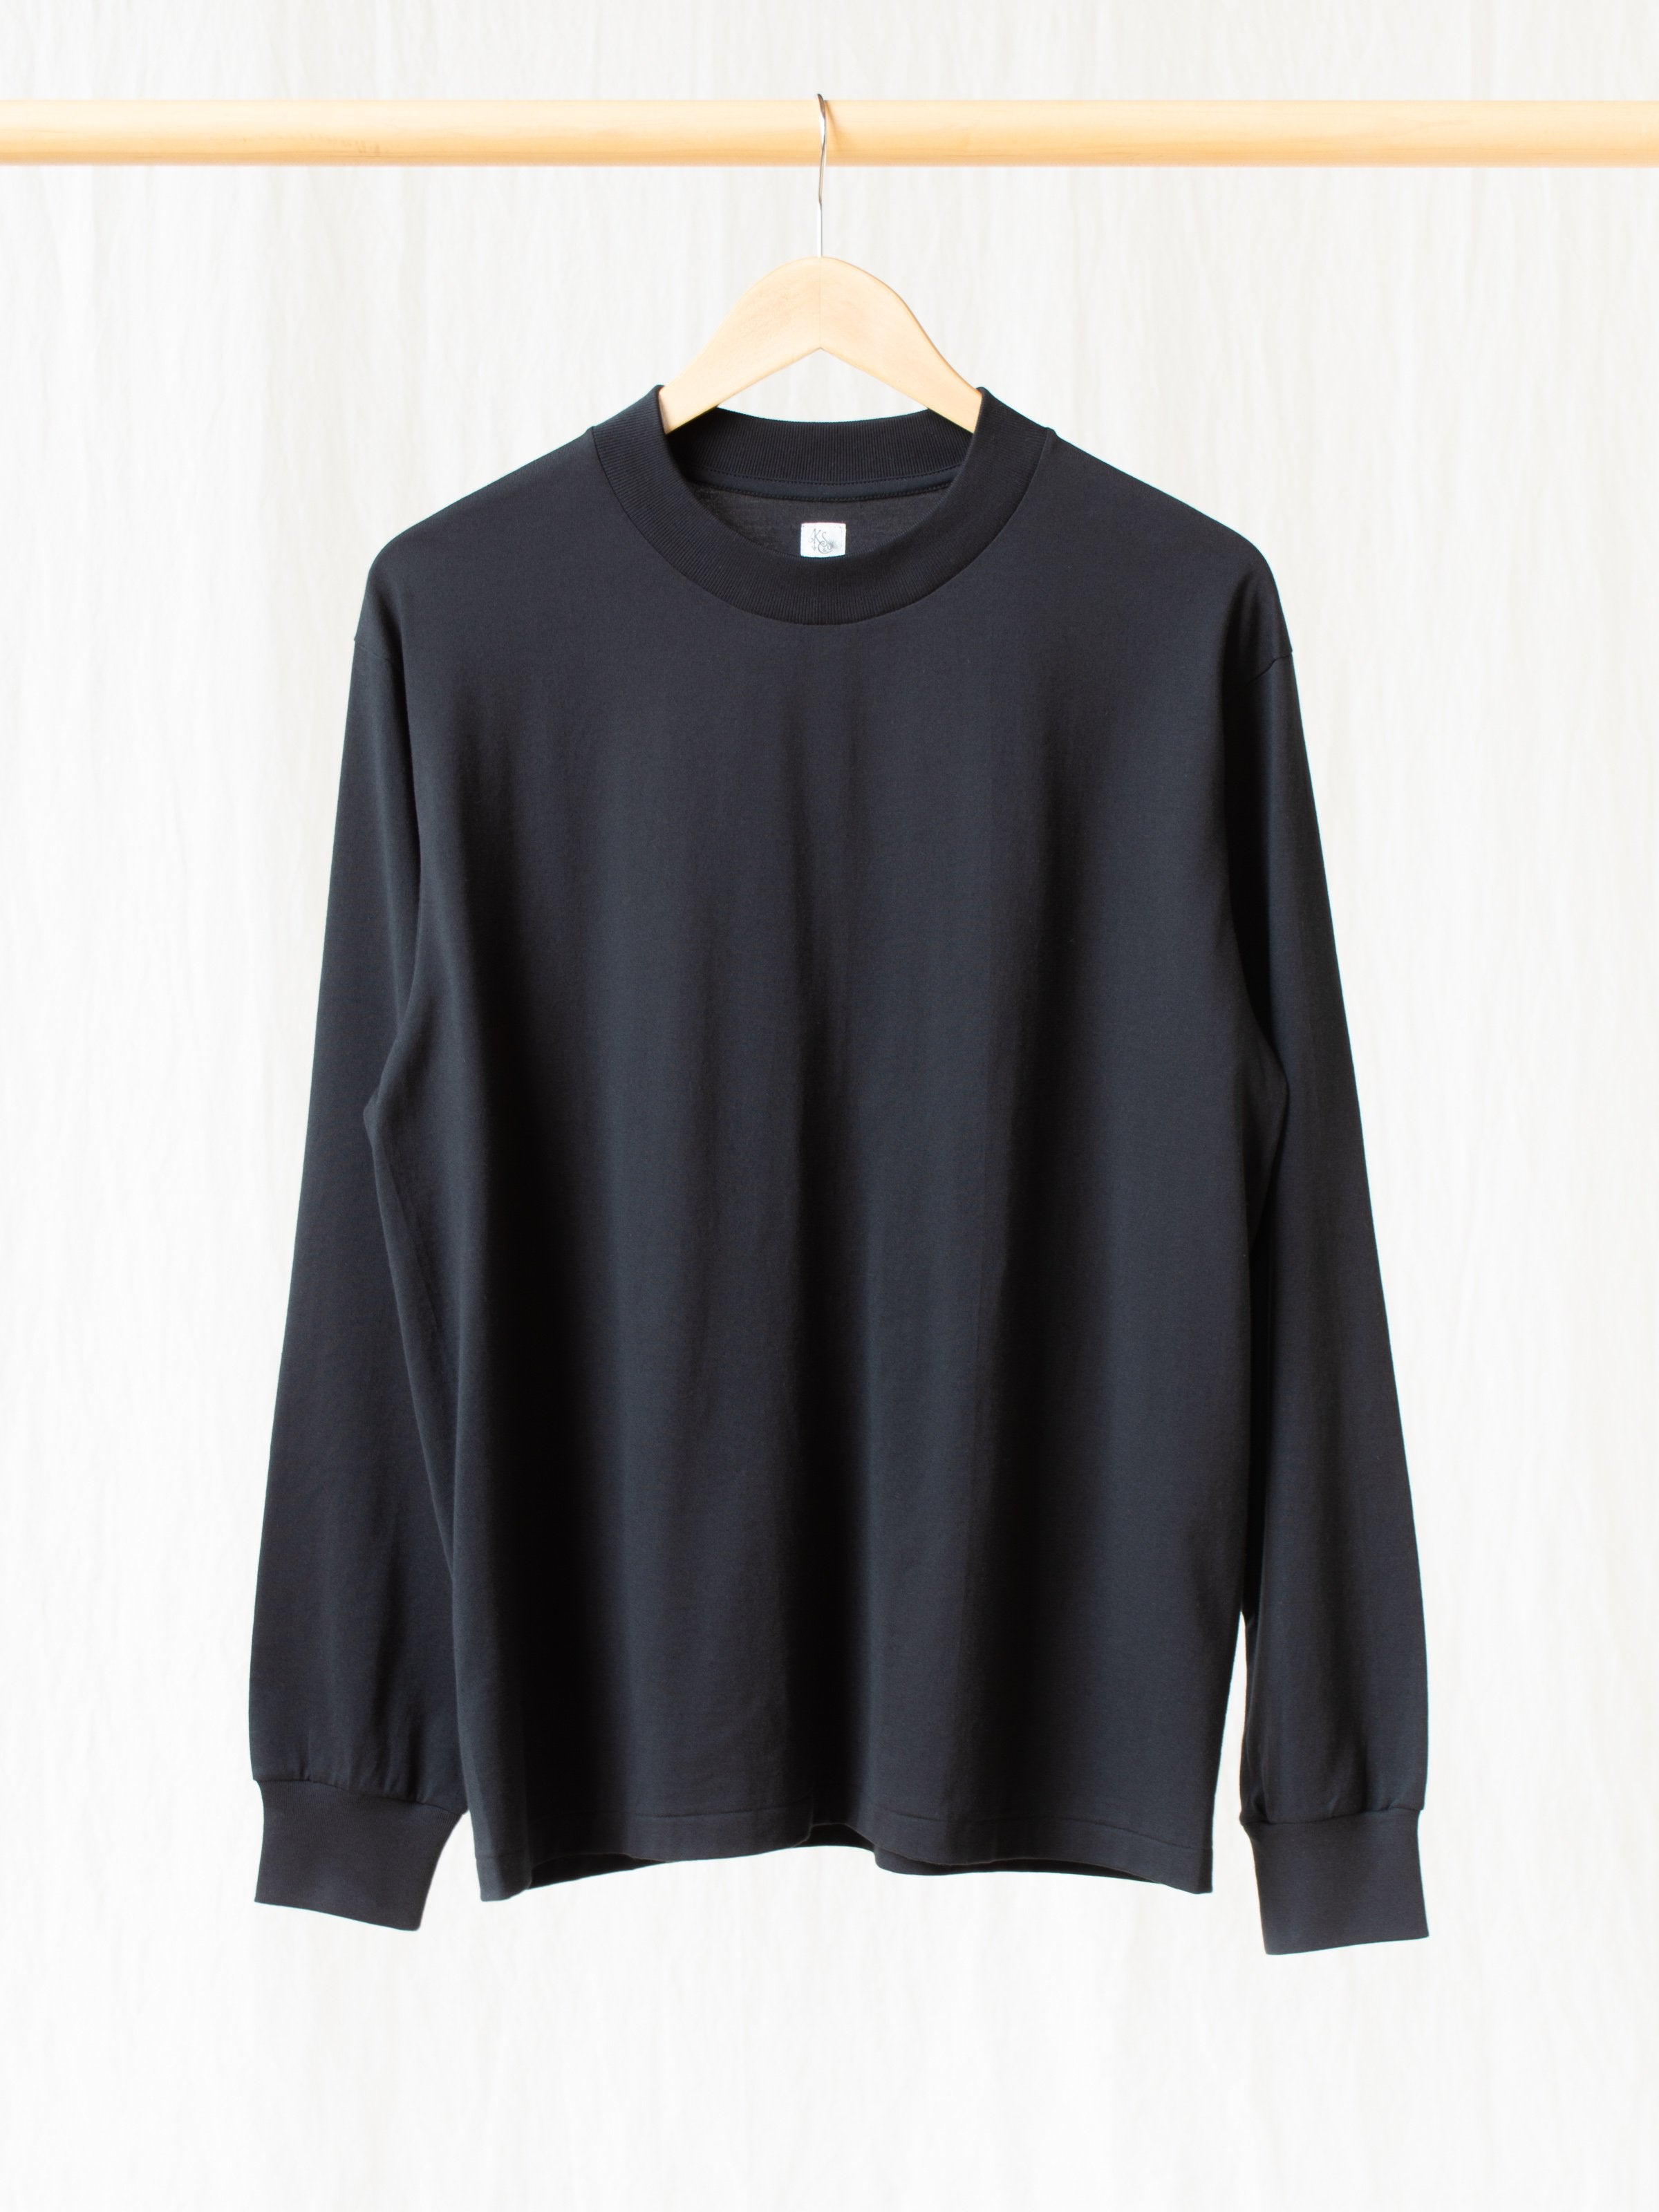 Namu Shop - Kaptain Sunshine Suvin Supima Crewneck Tube L/S Tee - Black